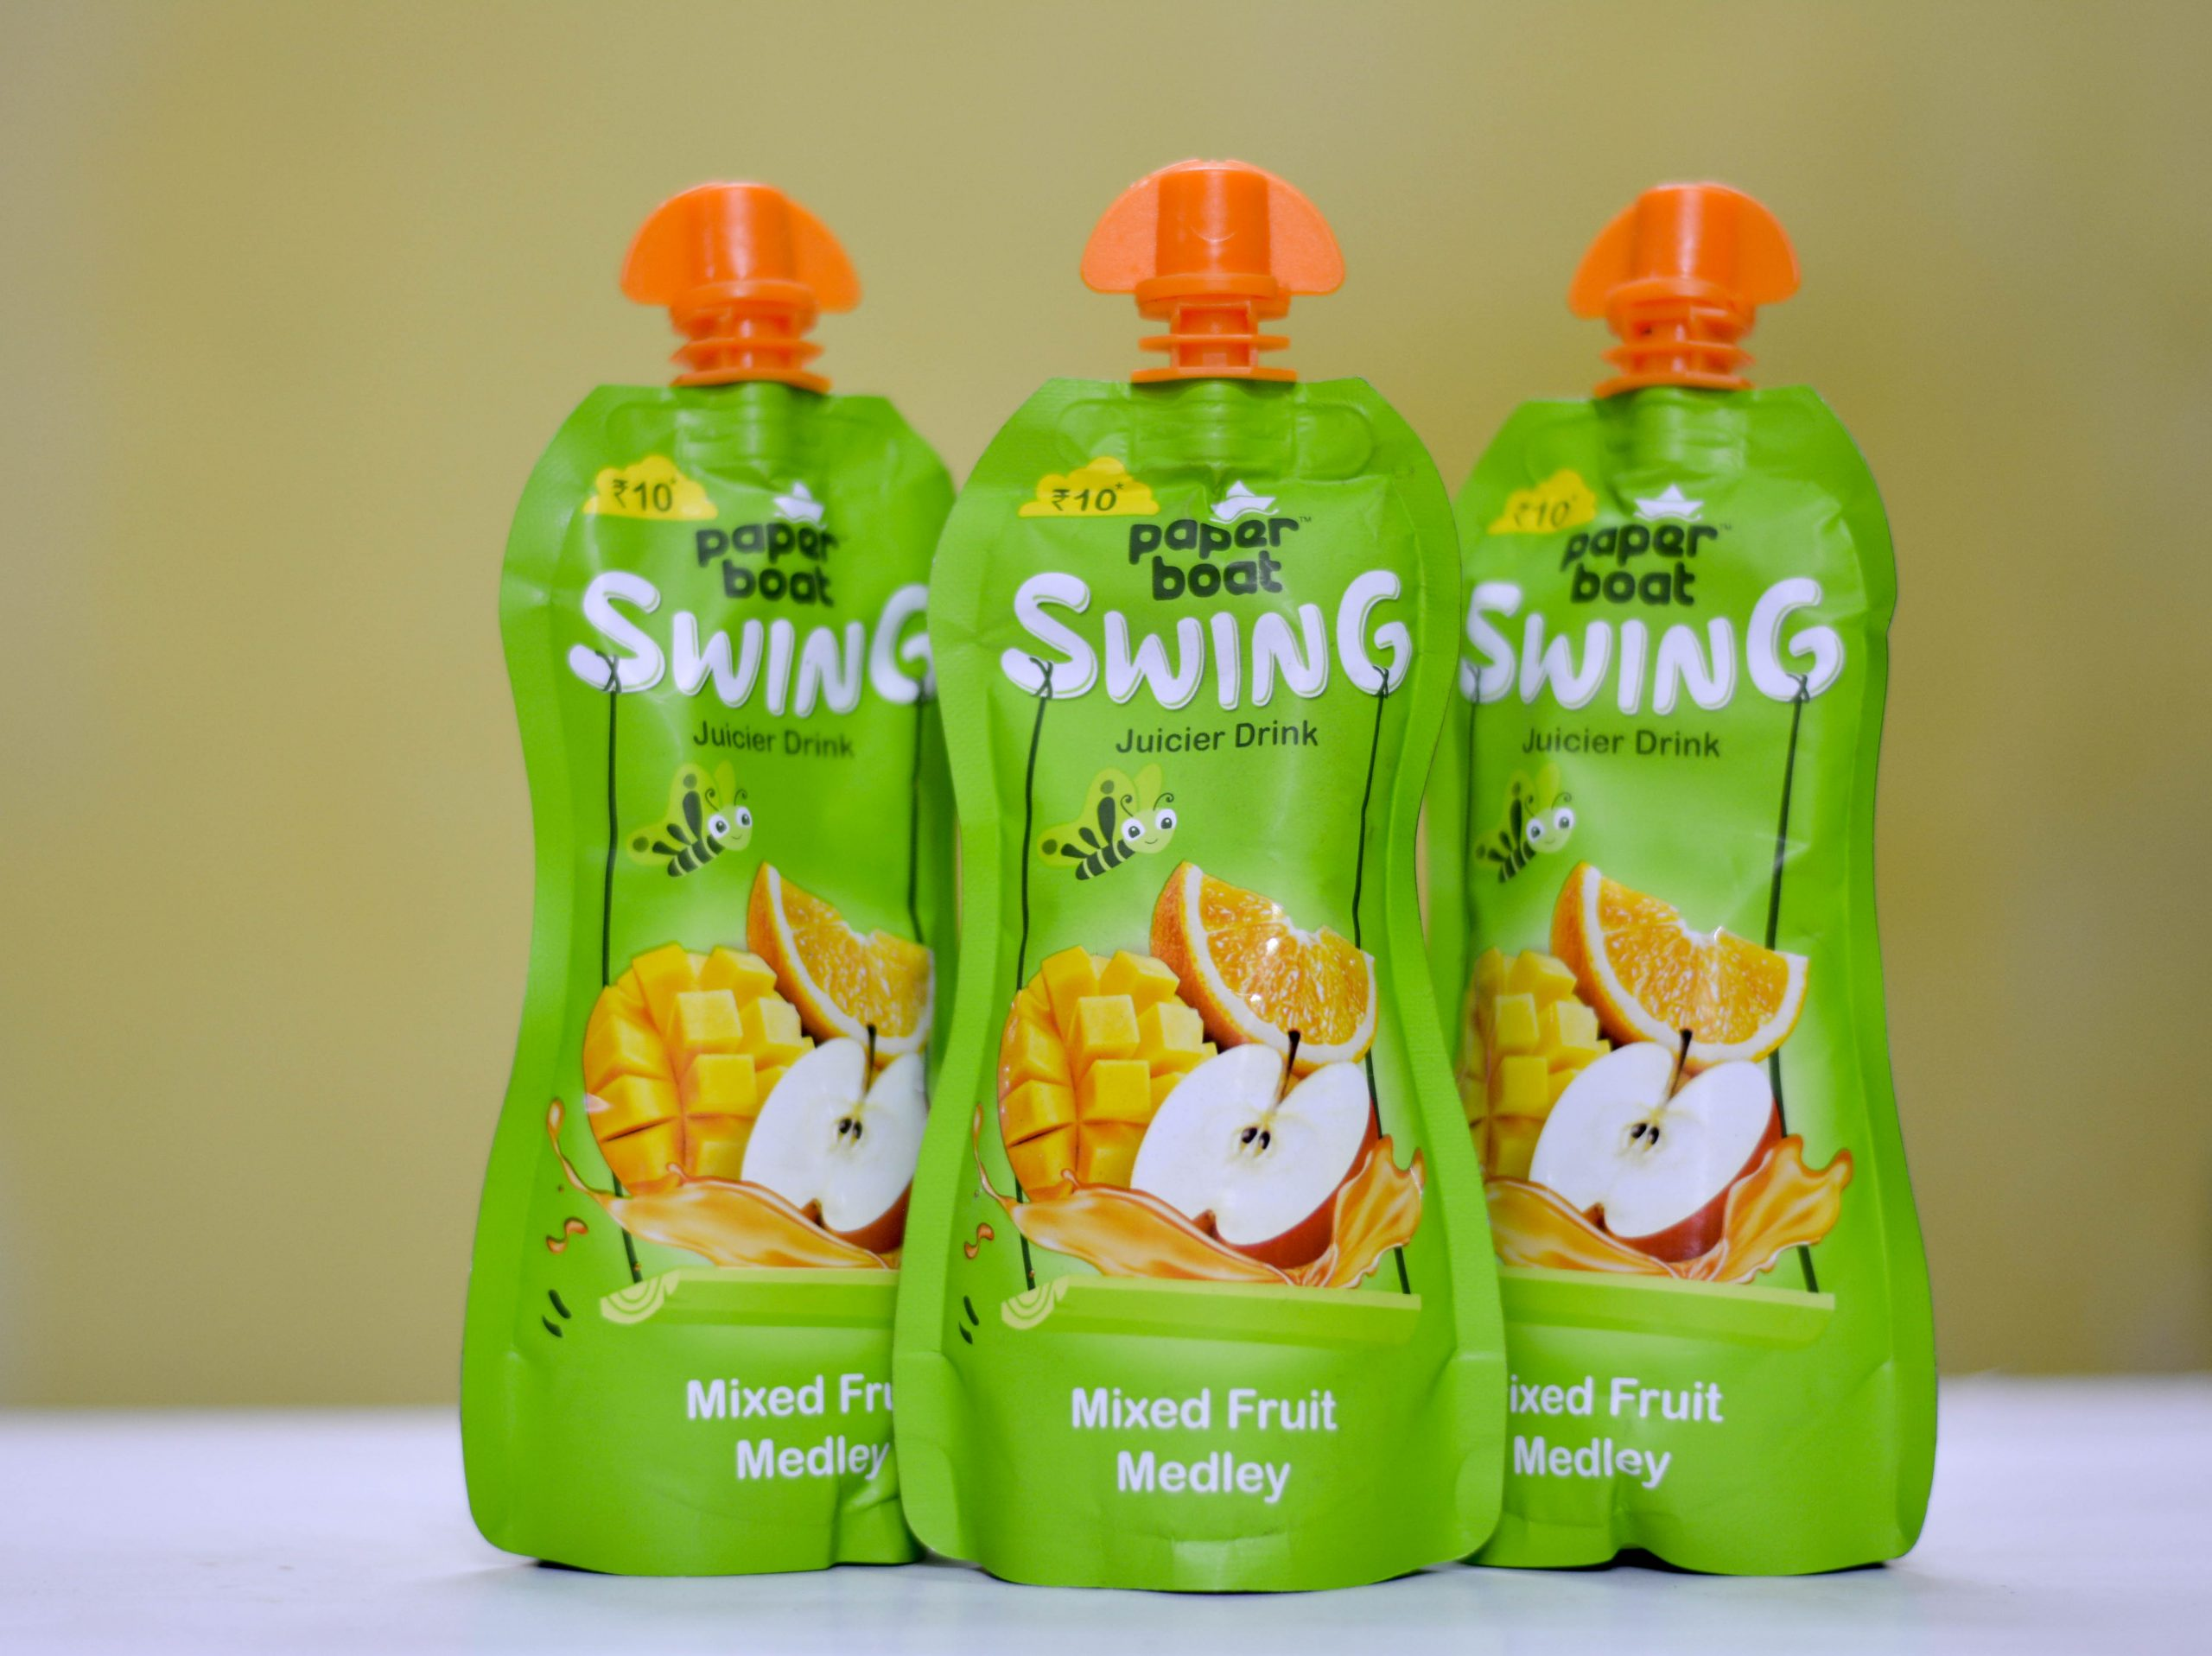 Paper boat swing juice packs